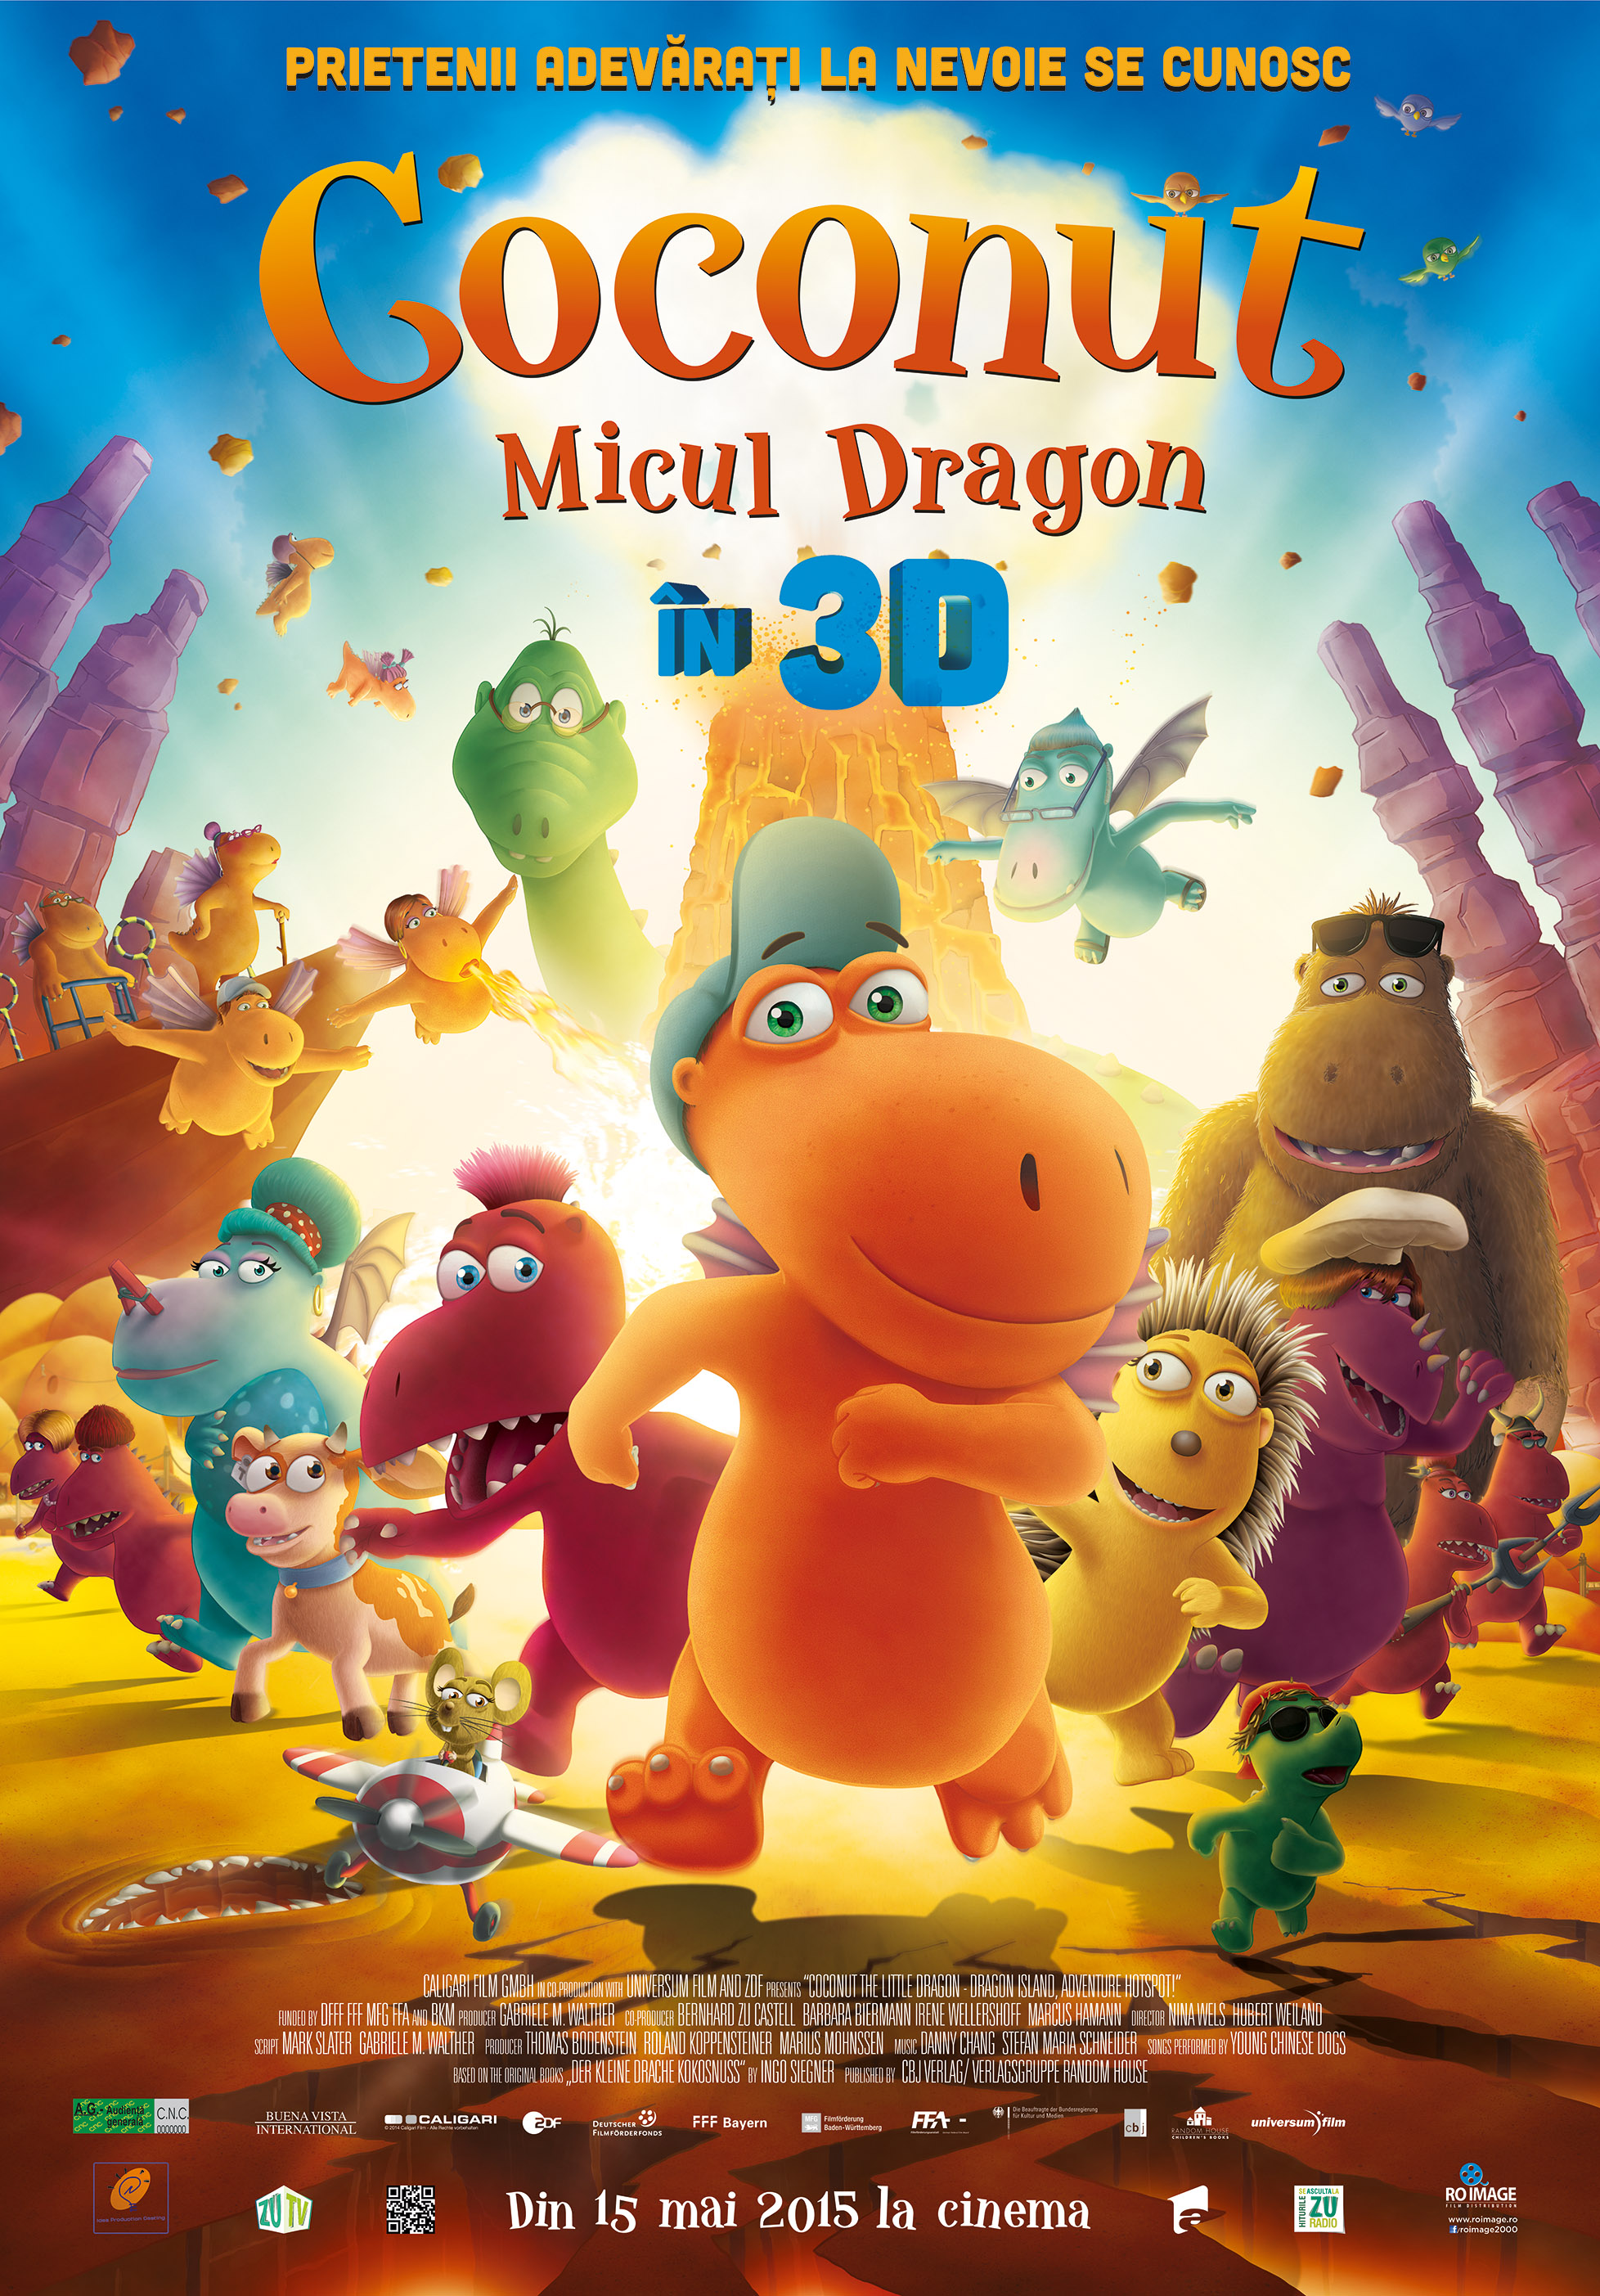 Coconut – Micul Dragon – 3D Dublat / Coconut – The Little Dragon - 3D Dubbed